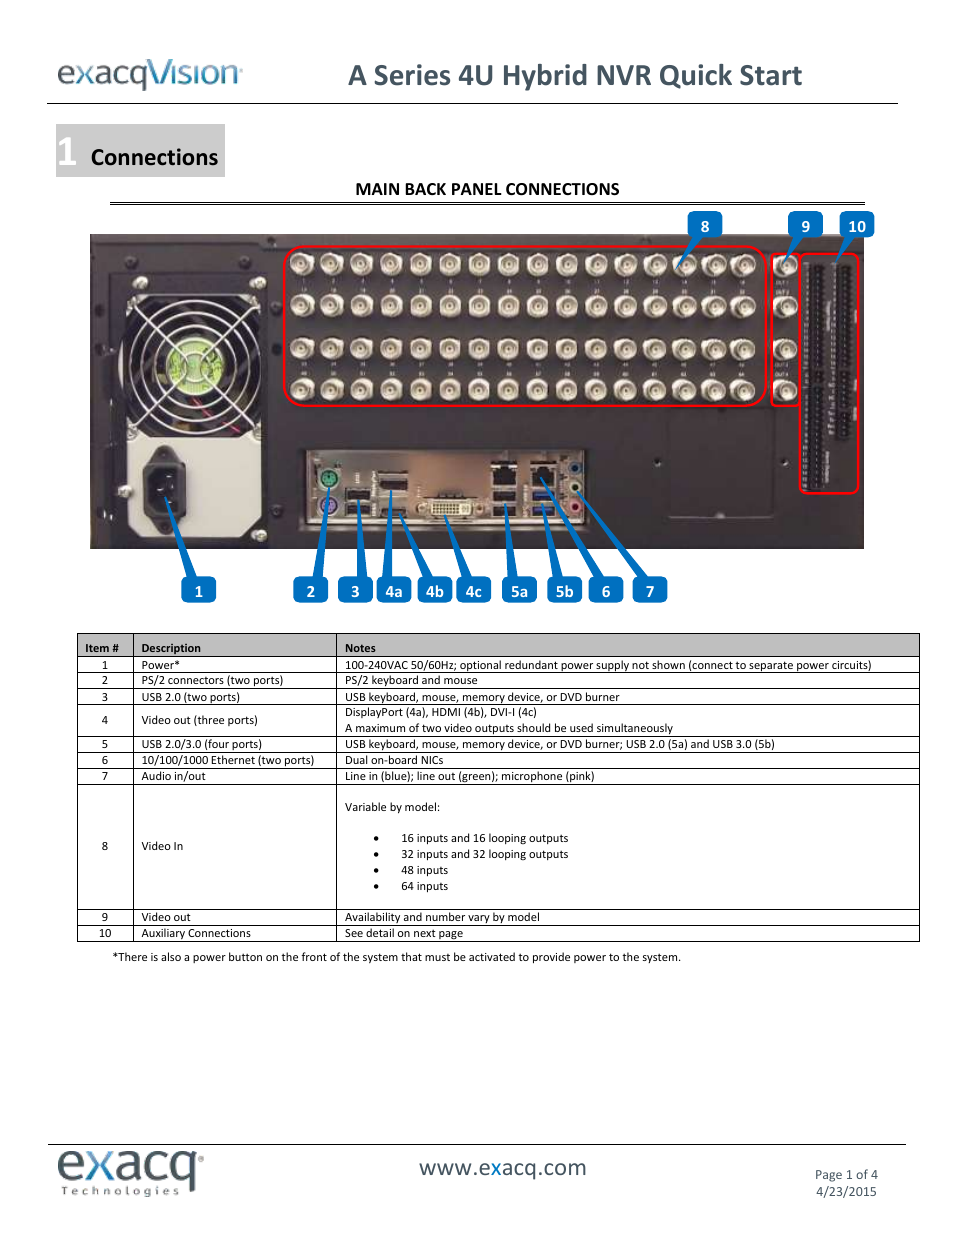 Exacq A Series 4U Hybrid NVR Quick Start Guide User Manual | 4 pages | Also  for: ELP/ELPR Quick Start Guide, Z Series 3U NVR Quick Start Guide, ...